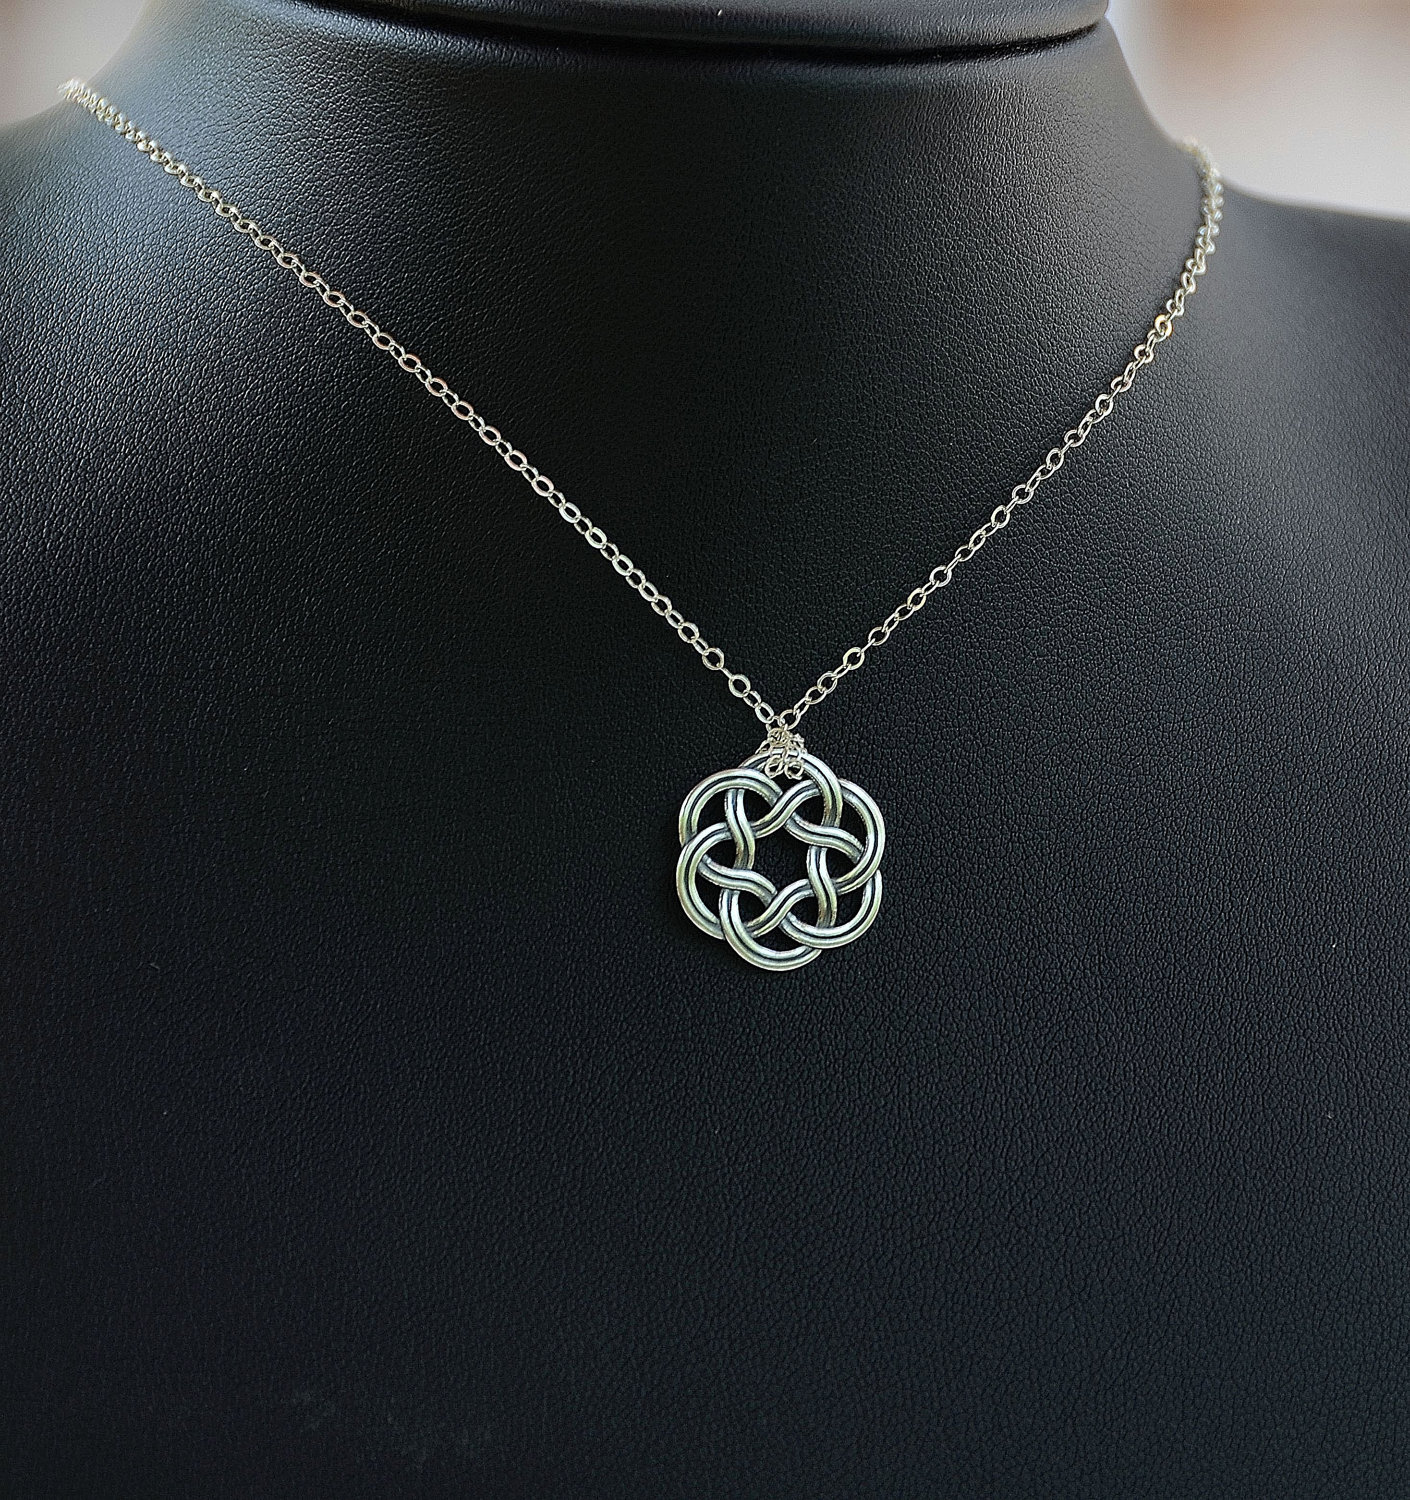 All sterling silver celtic necklace celtic jewelry celtic zoom biocorpaavc